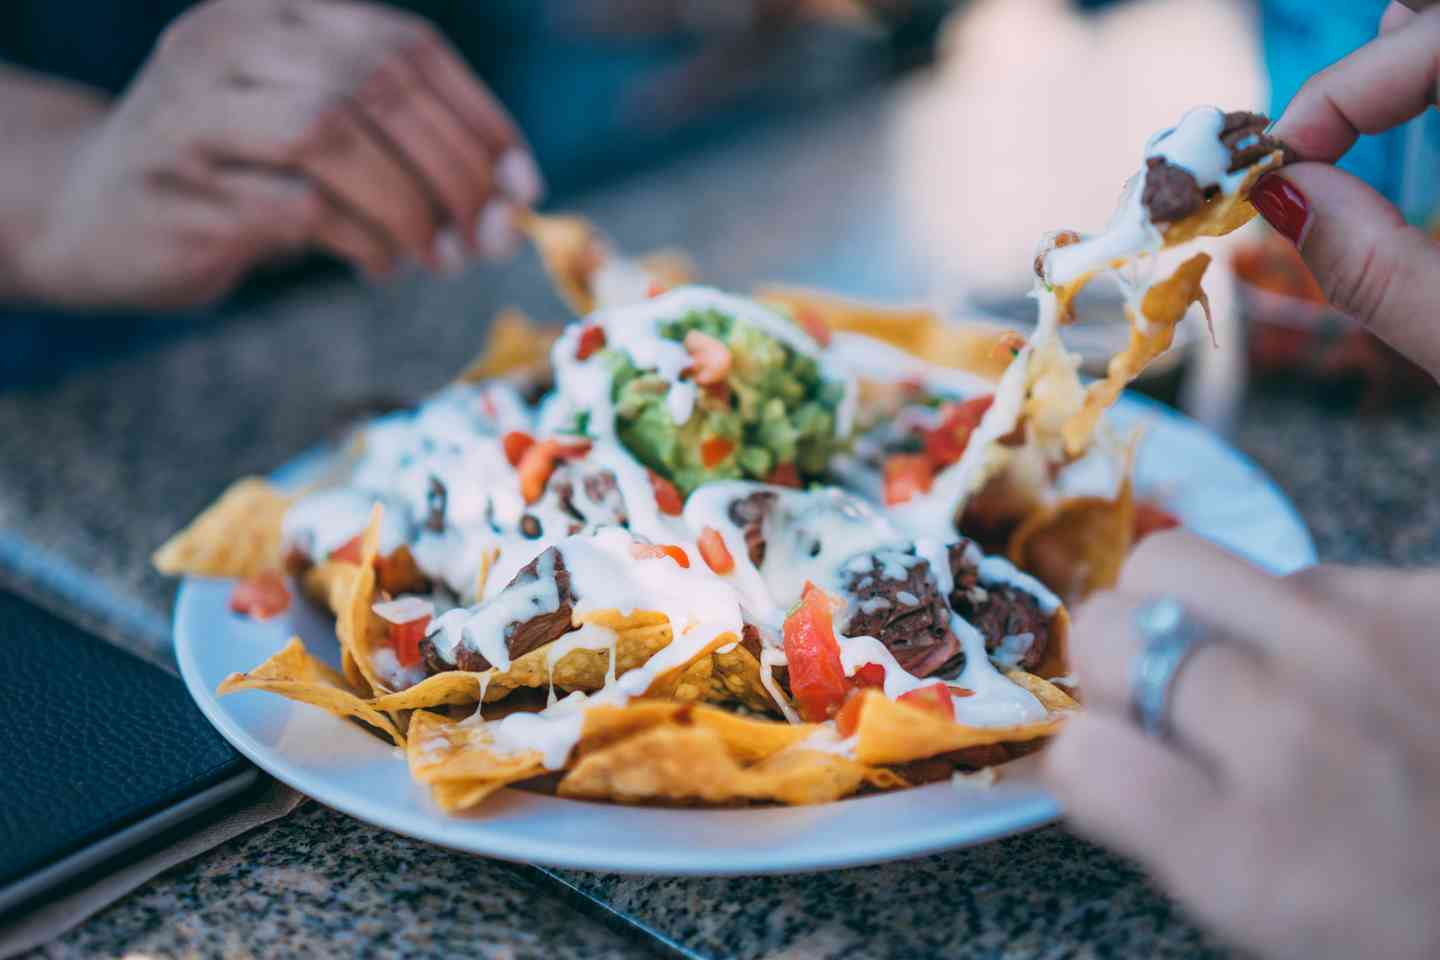 Nachos being pulled apart about to get eaten